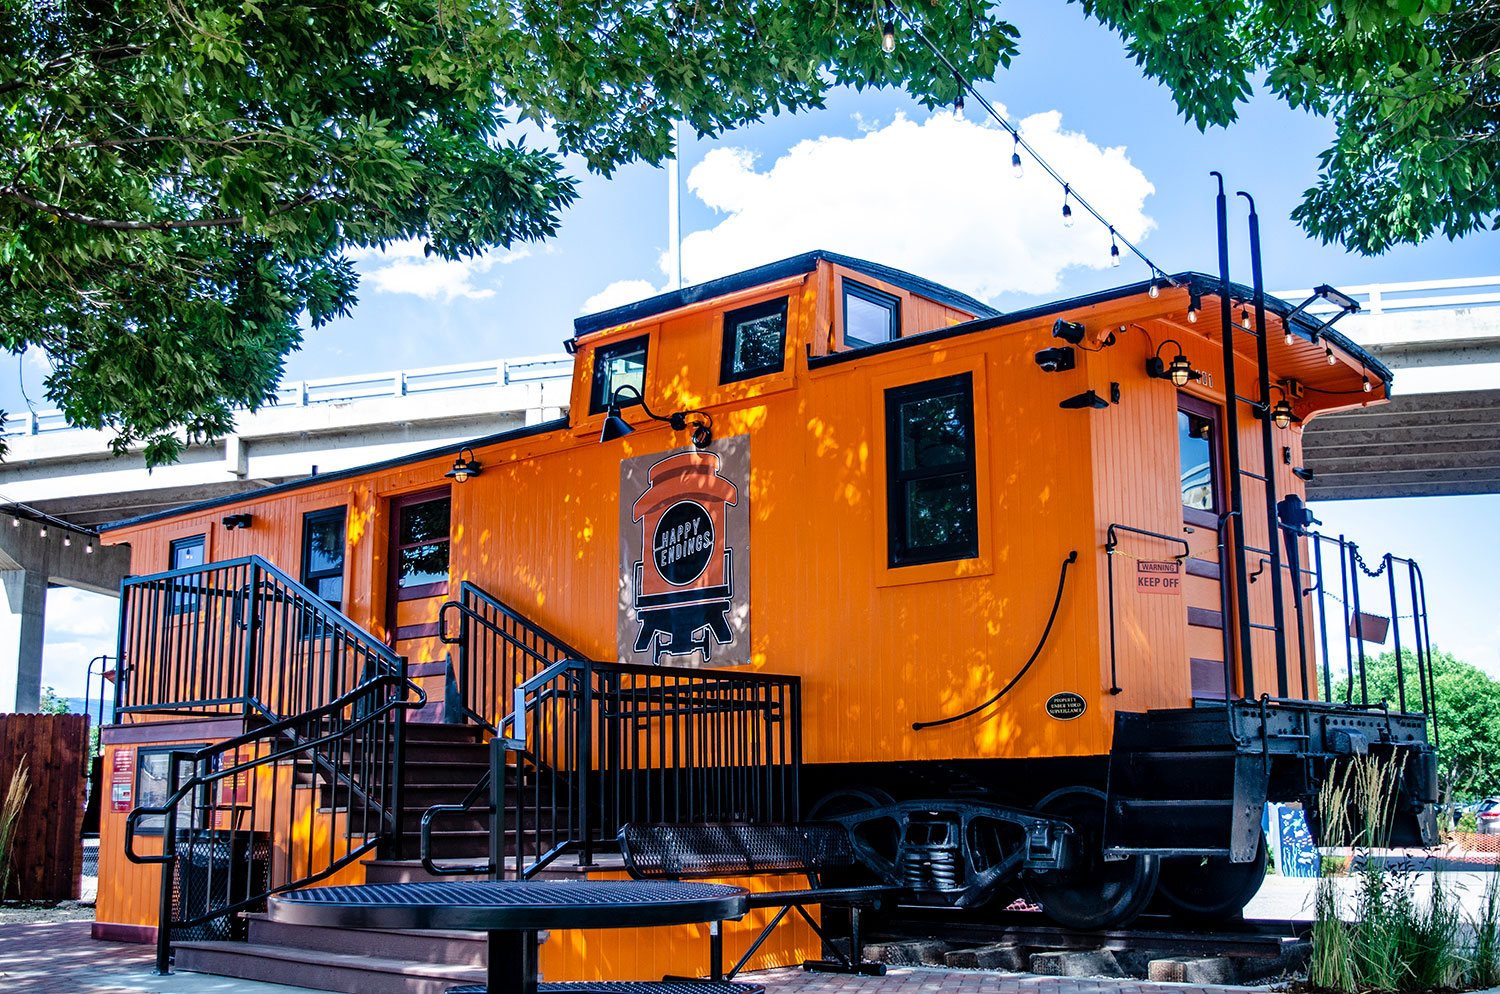 Happy Endings Caboose Cafe open daily at 7 a.m.